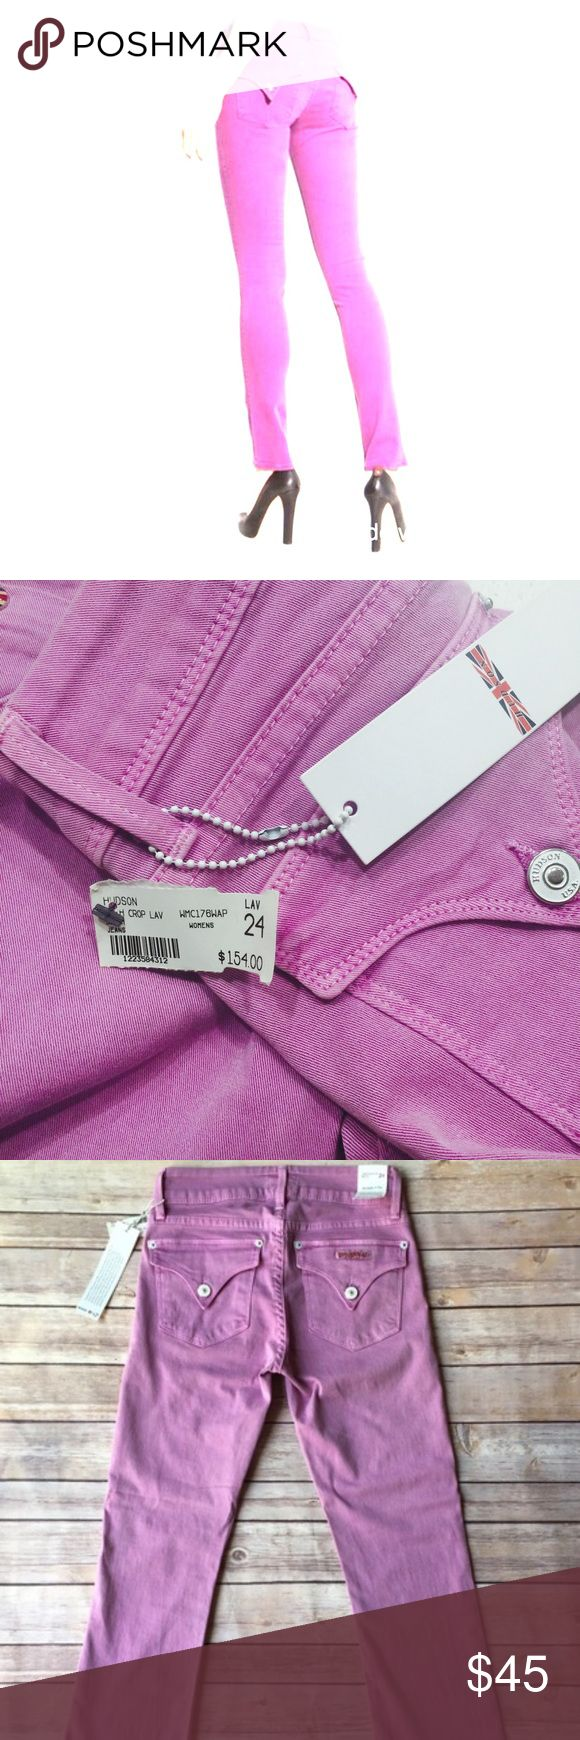 Hudson size 24 Lavender jeans ! NWT  Beth style Such a cool pair of jeans NWT Beth style crop or petite all original tags has some stretch for a nice fit !    Just too big for me 261/2 inch inseam can be rolled for Capri style cute with booties or heels ! Hudson Jeans Jeans Ankle & Cropped